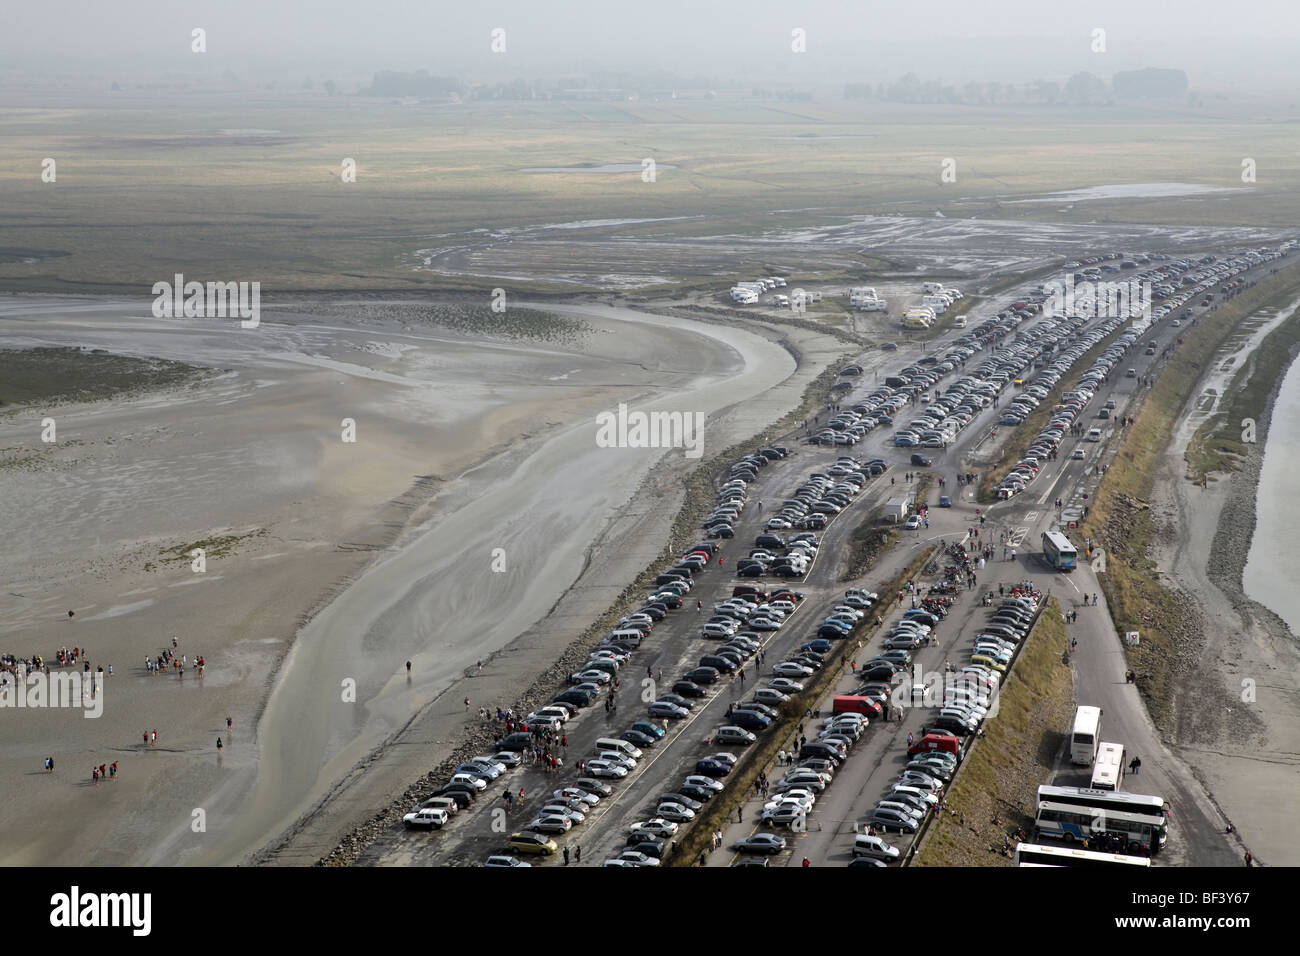 overcrowded car park and bay mont michel normandy